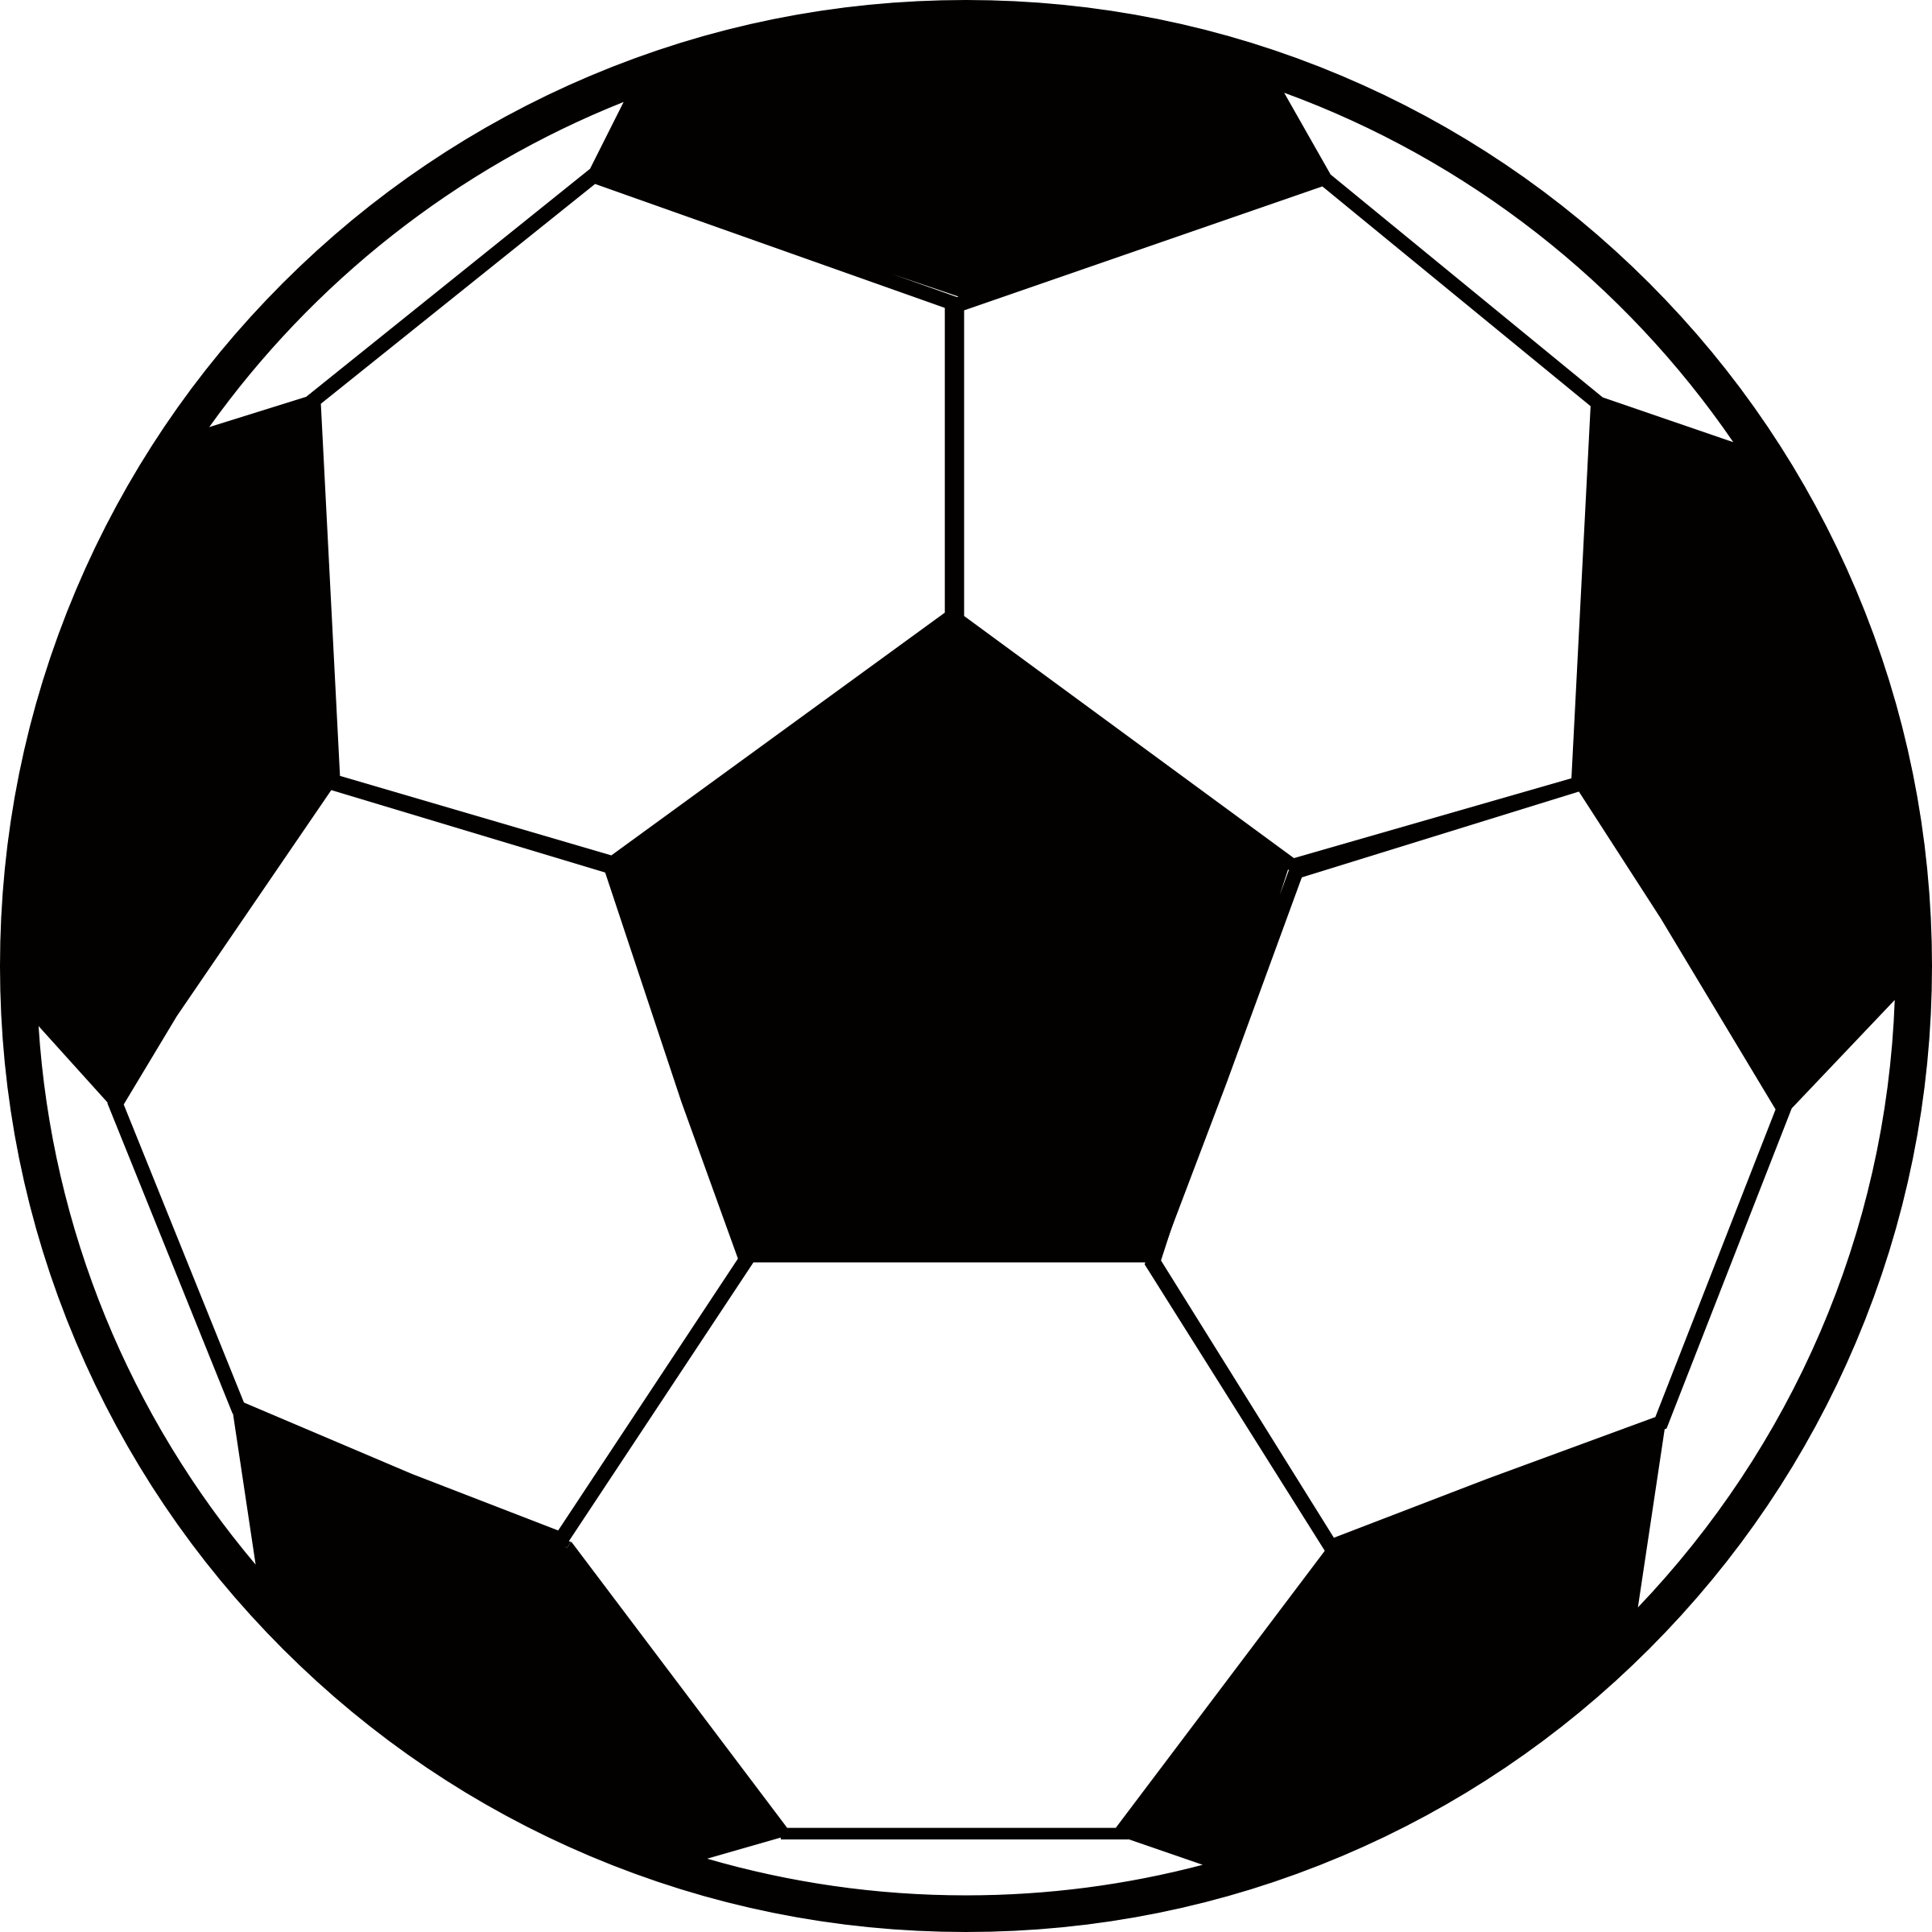 Soccer ball clipart black and white. With free daily